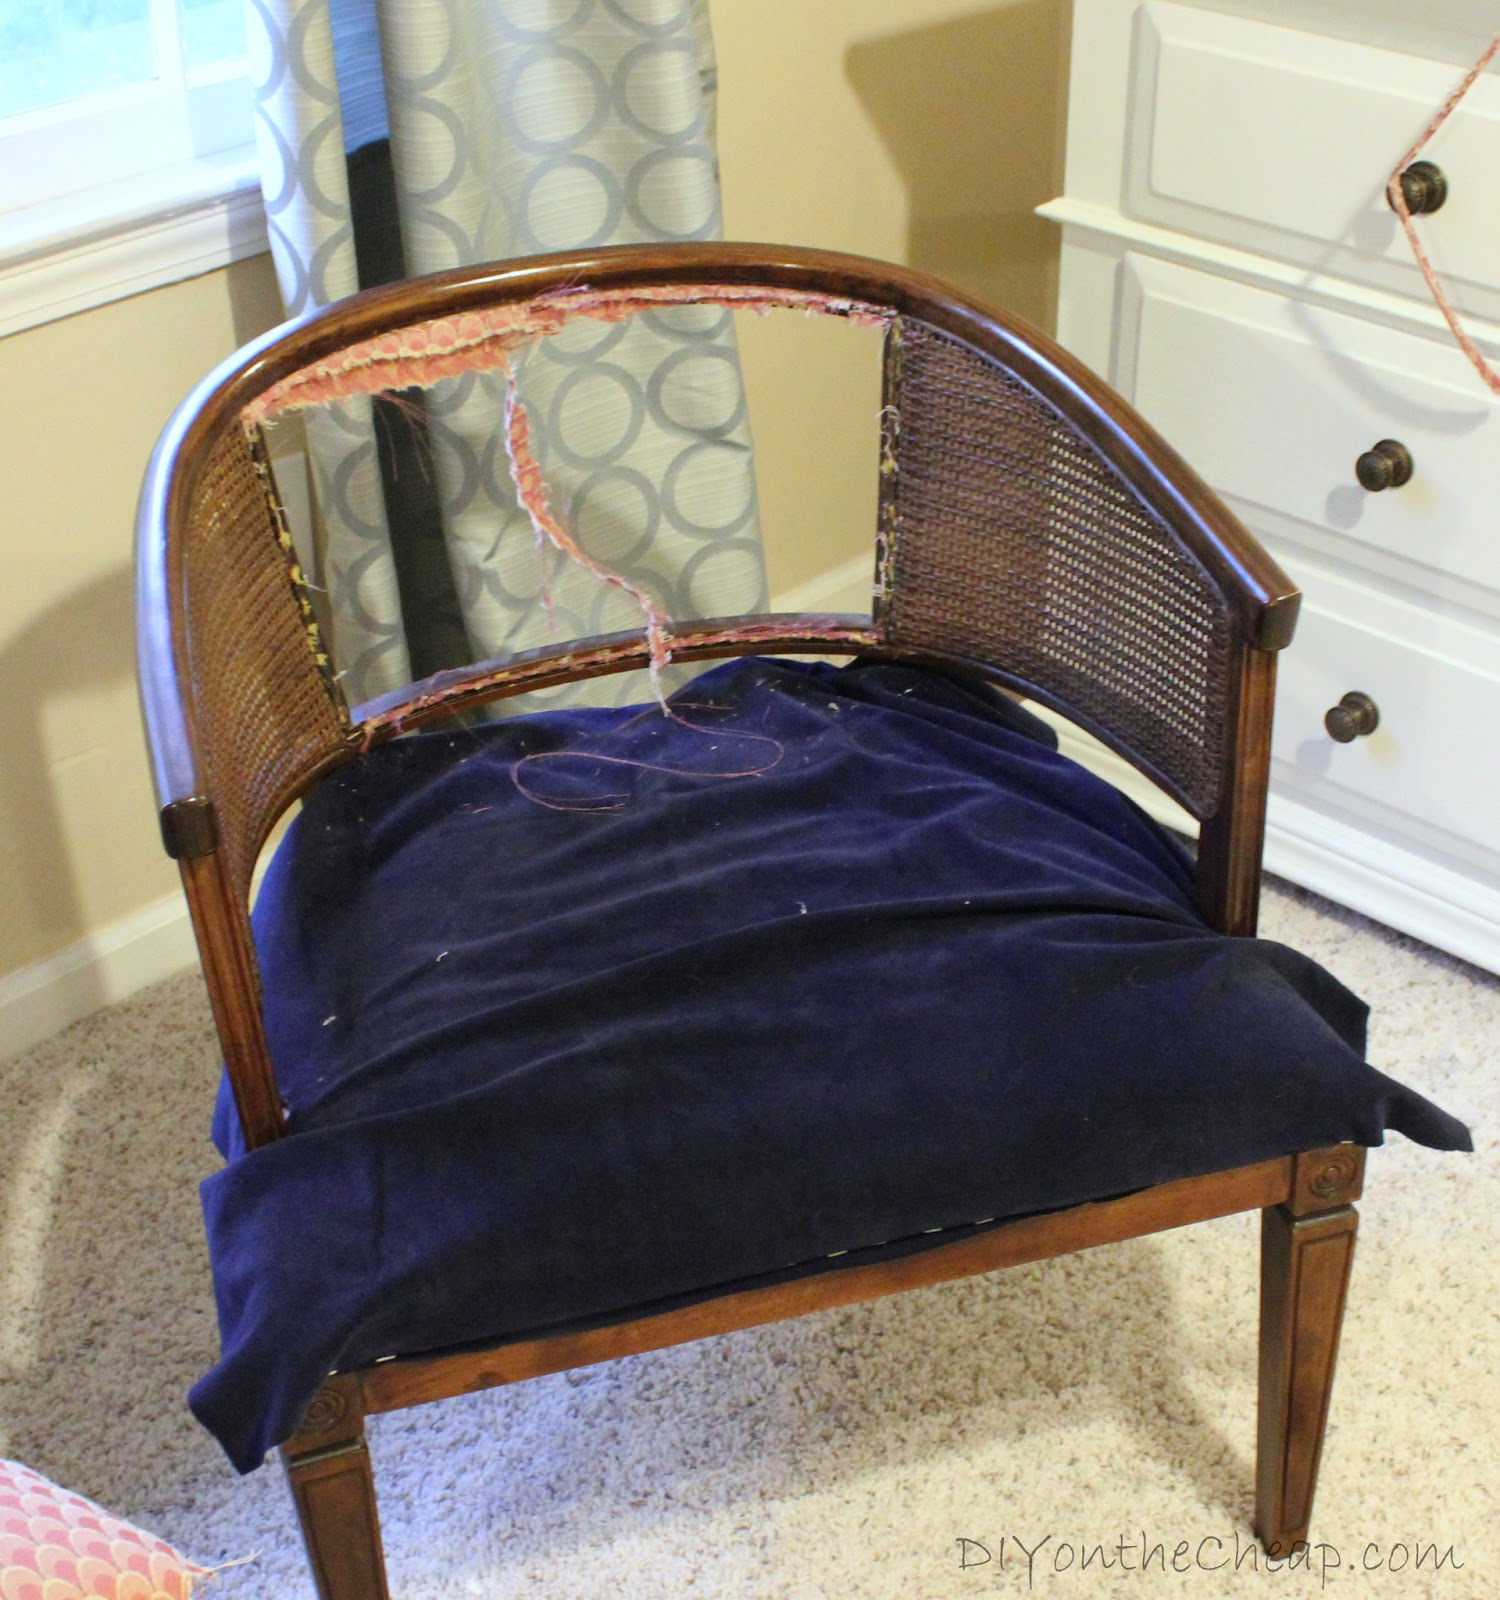 Best Chair To Use After Back Surgery 2 Travel High My Lazy Girl 39s Guide Reupholstering Chairs A Tutorial